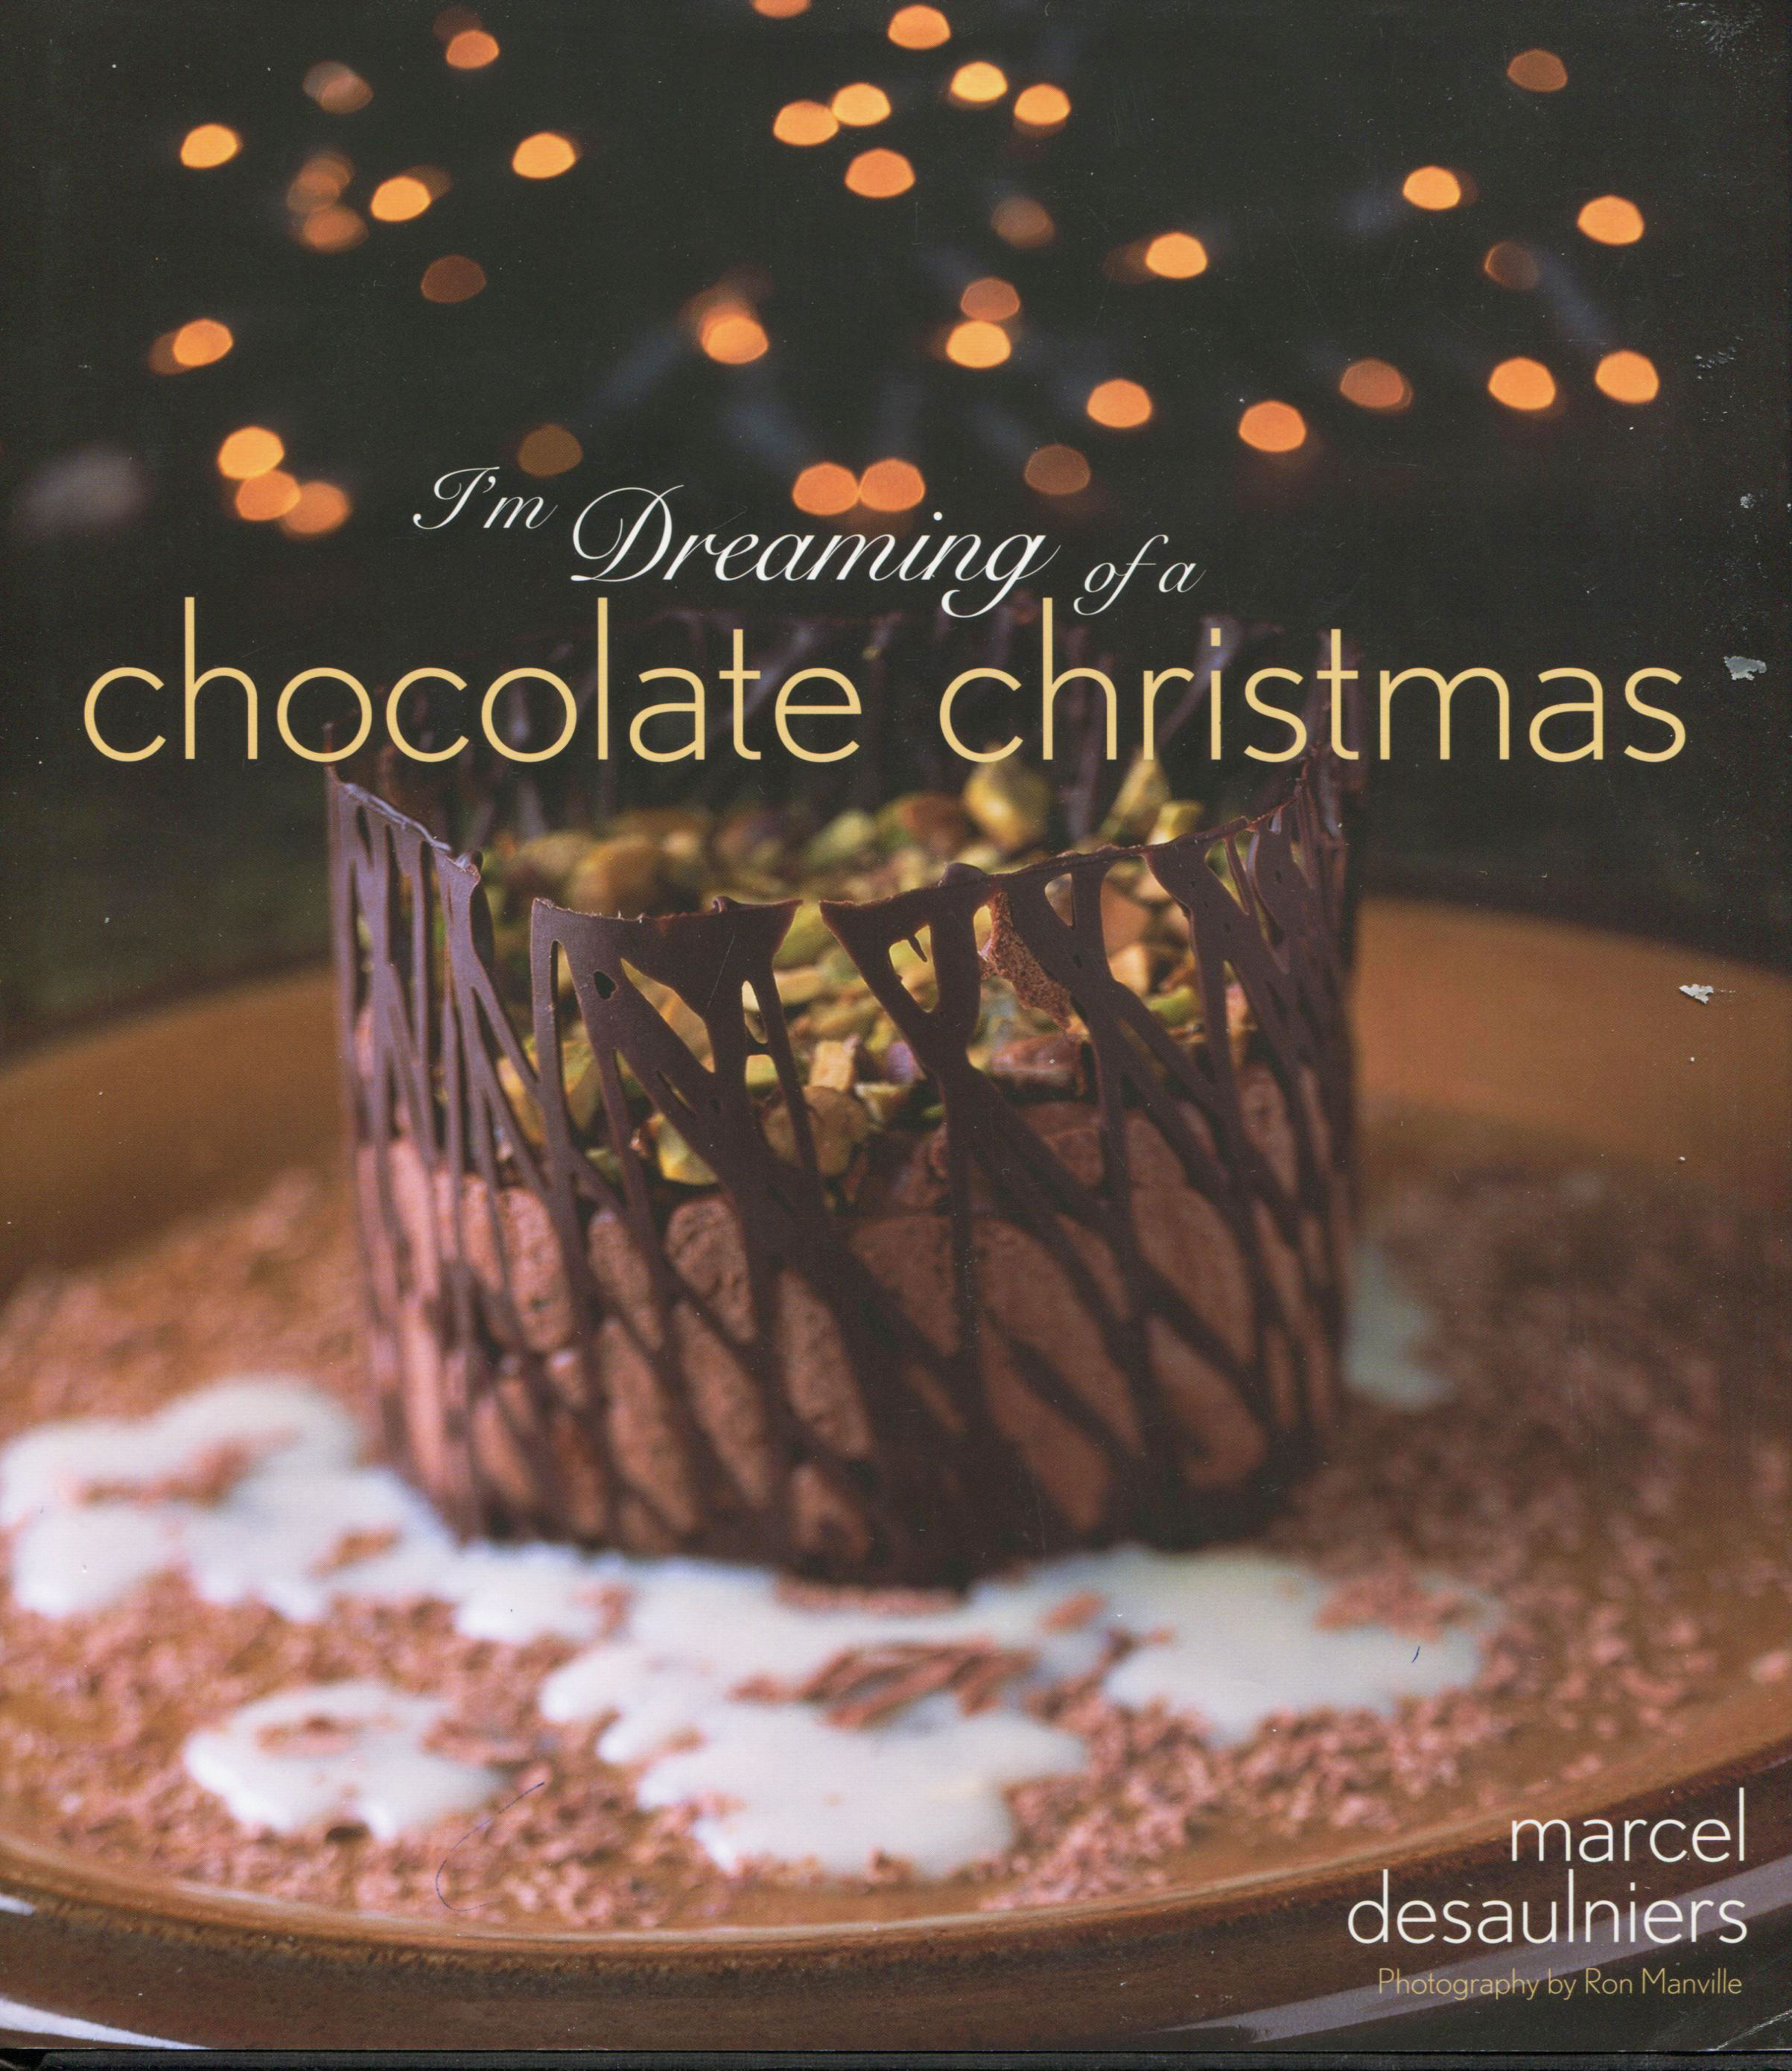 TBT Cookbook Review: I'm Dreaming of a Chocolate Christmas by Marcel Desaulniers